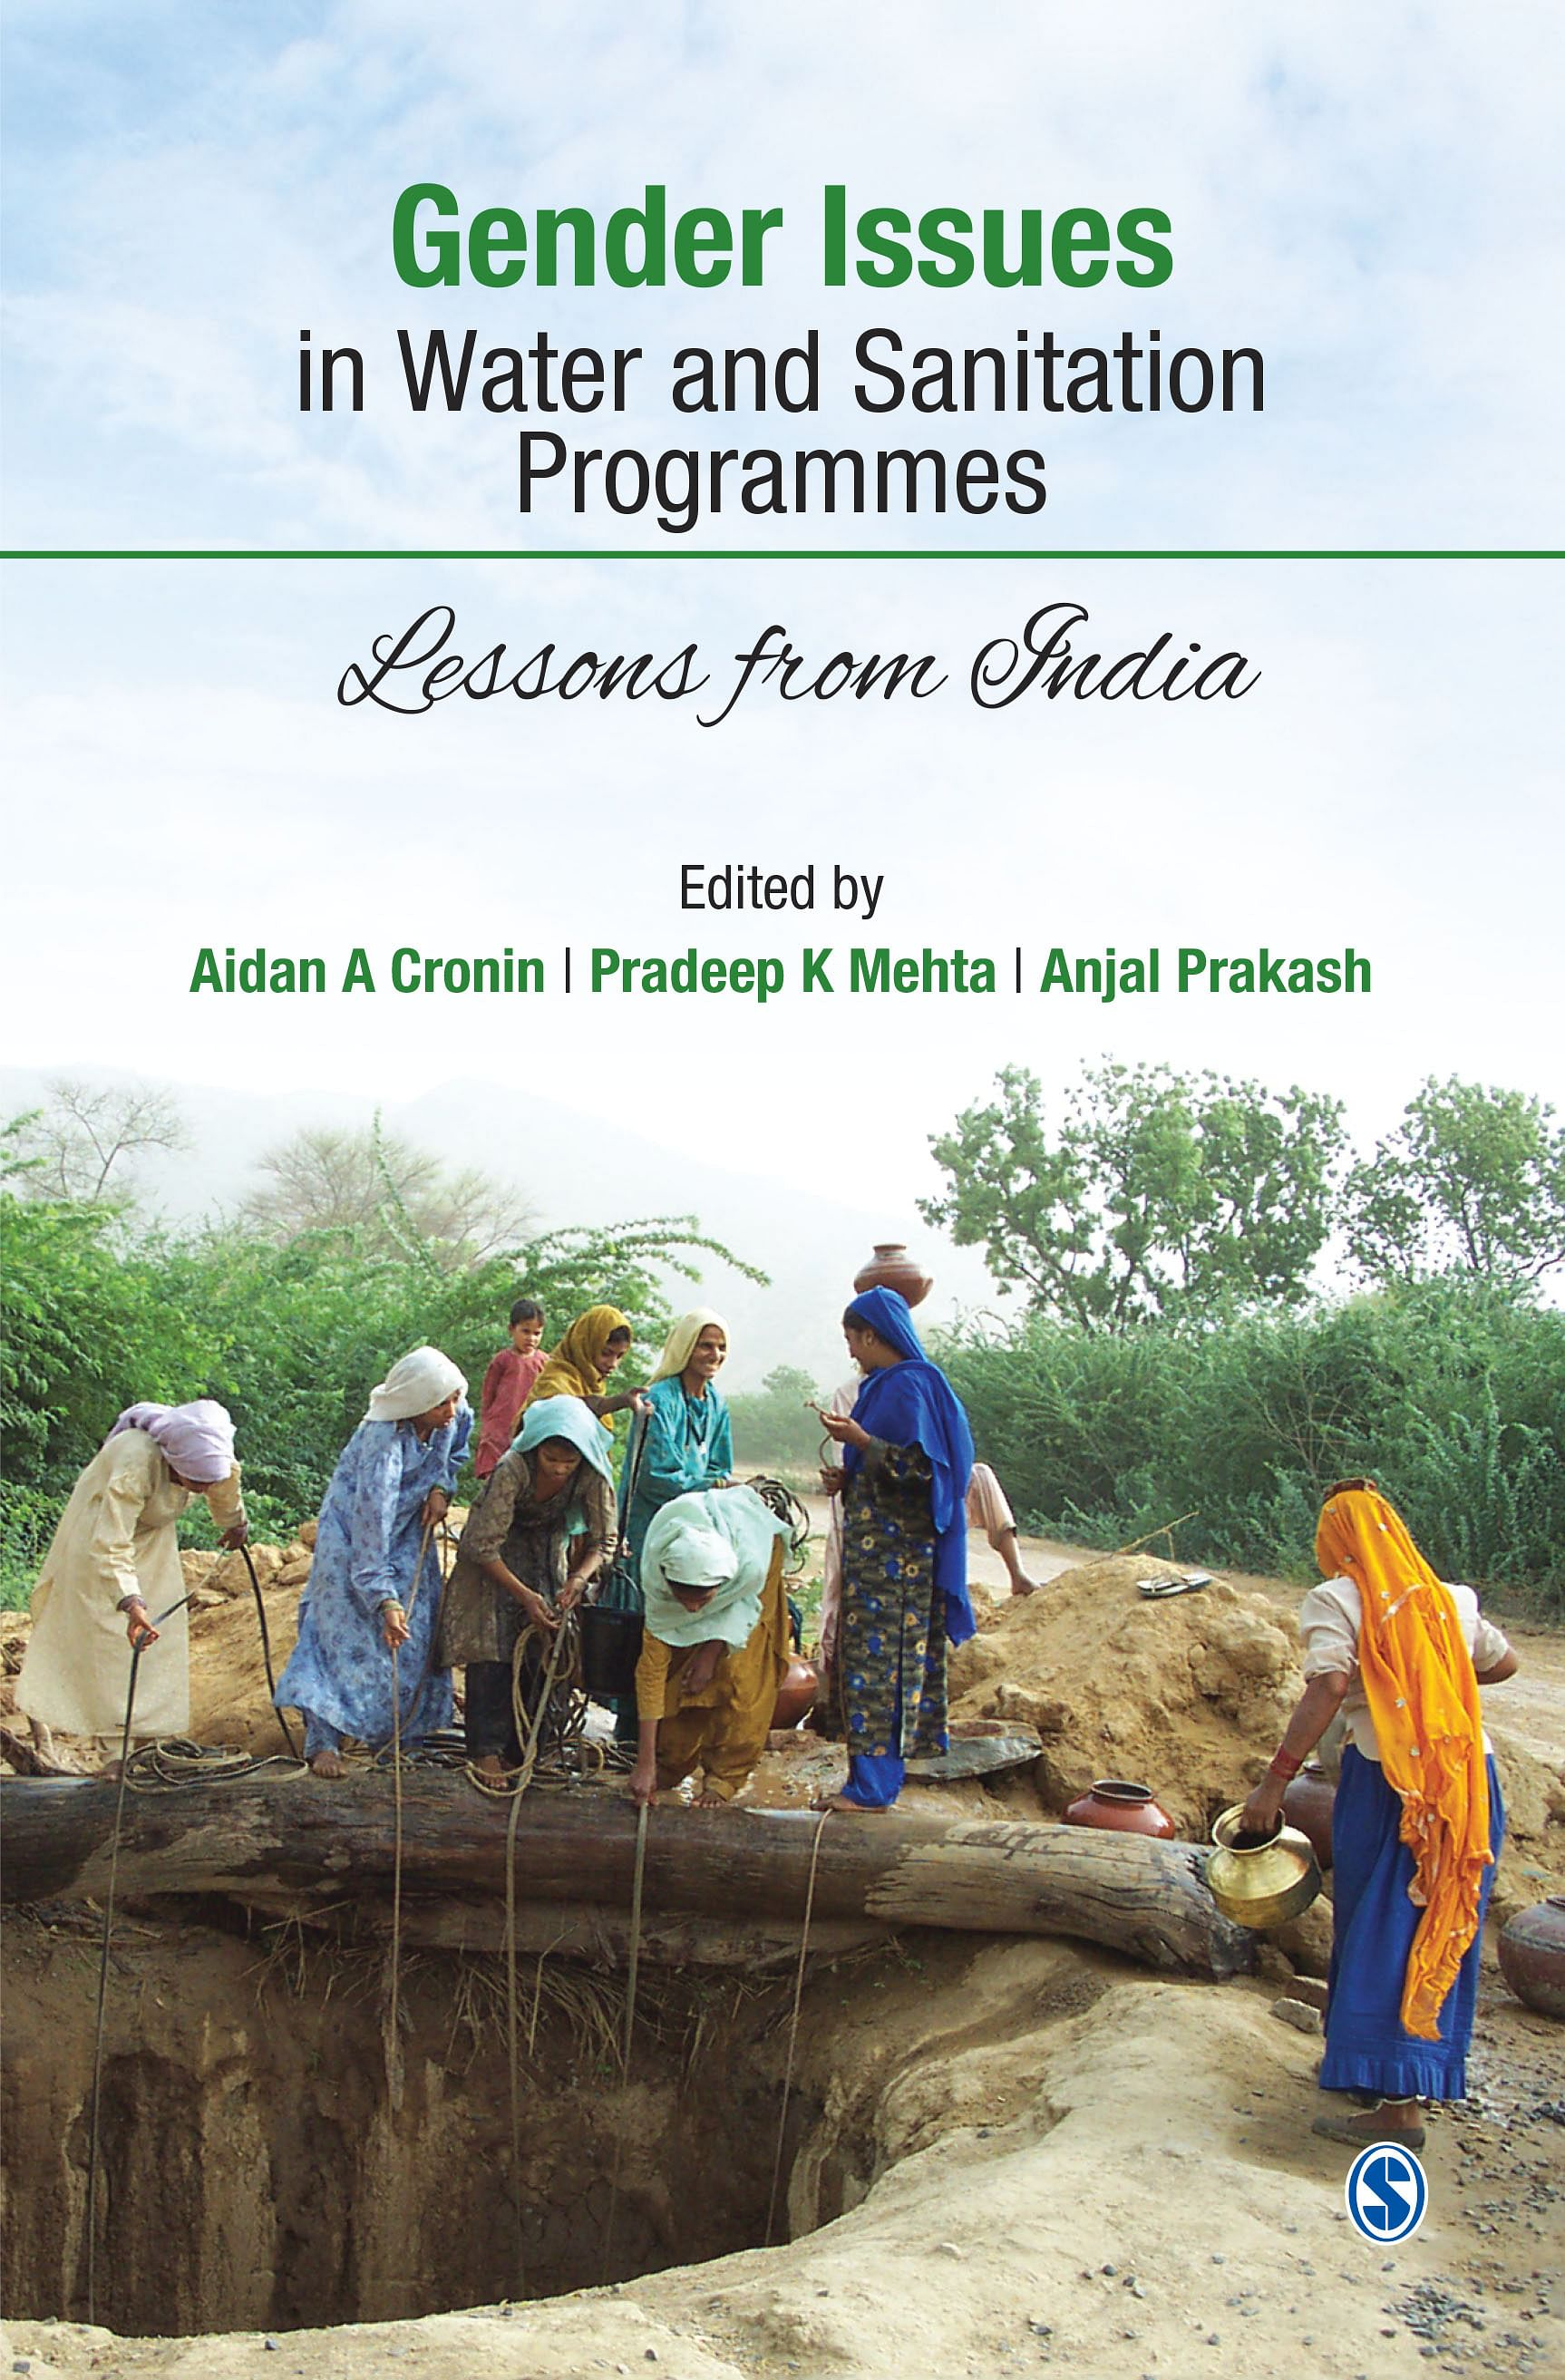 Cover: Gender Issue in Water and Sanitation Programmes: Lesson from India edited by Aidan A. Cronin, Pradeep K. Mehta and Anjal Prakash; Published by Sage Publications; Price: Rs 995/Hardback; Pp: 312.